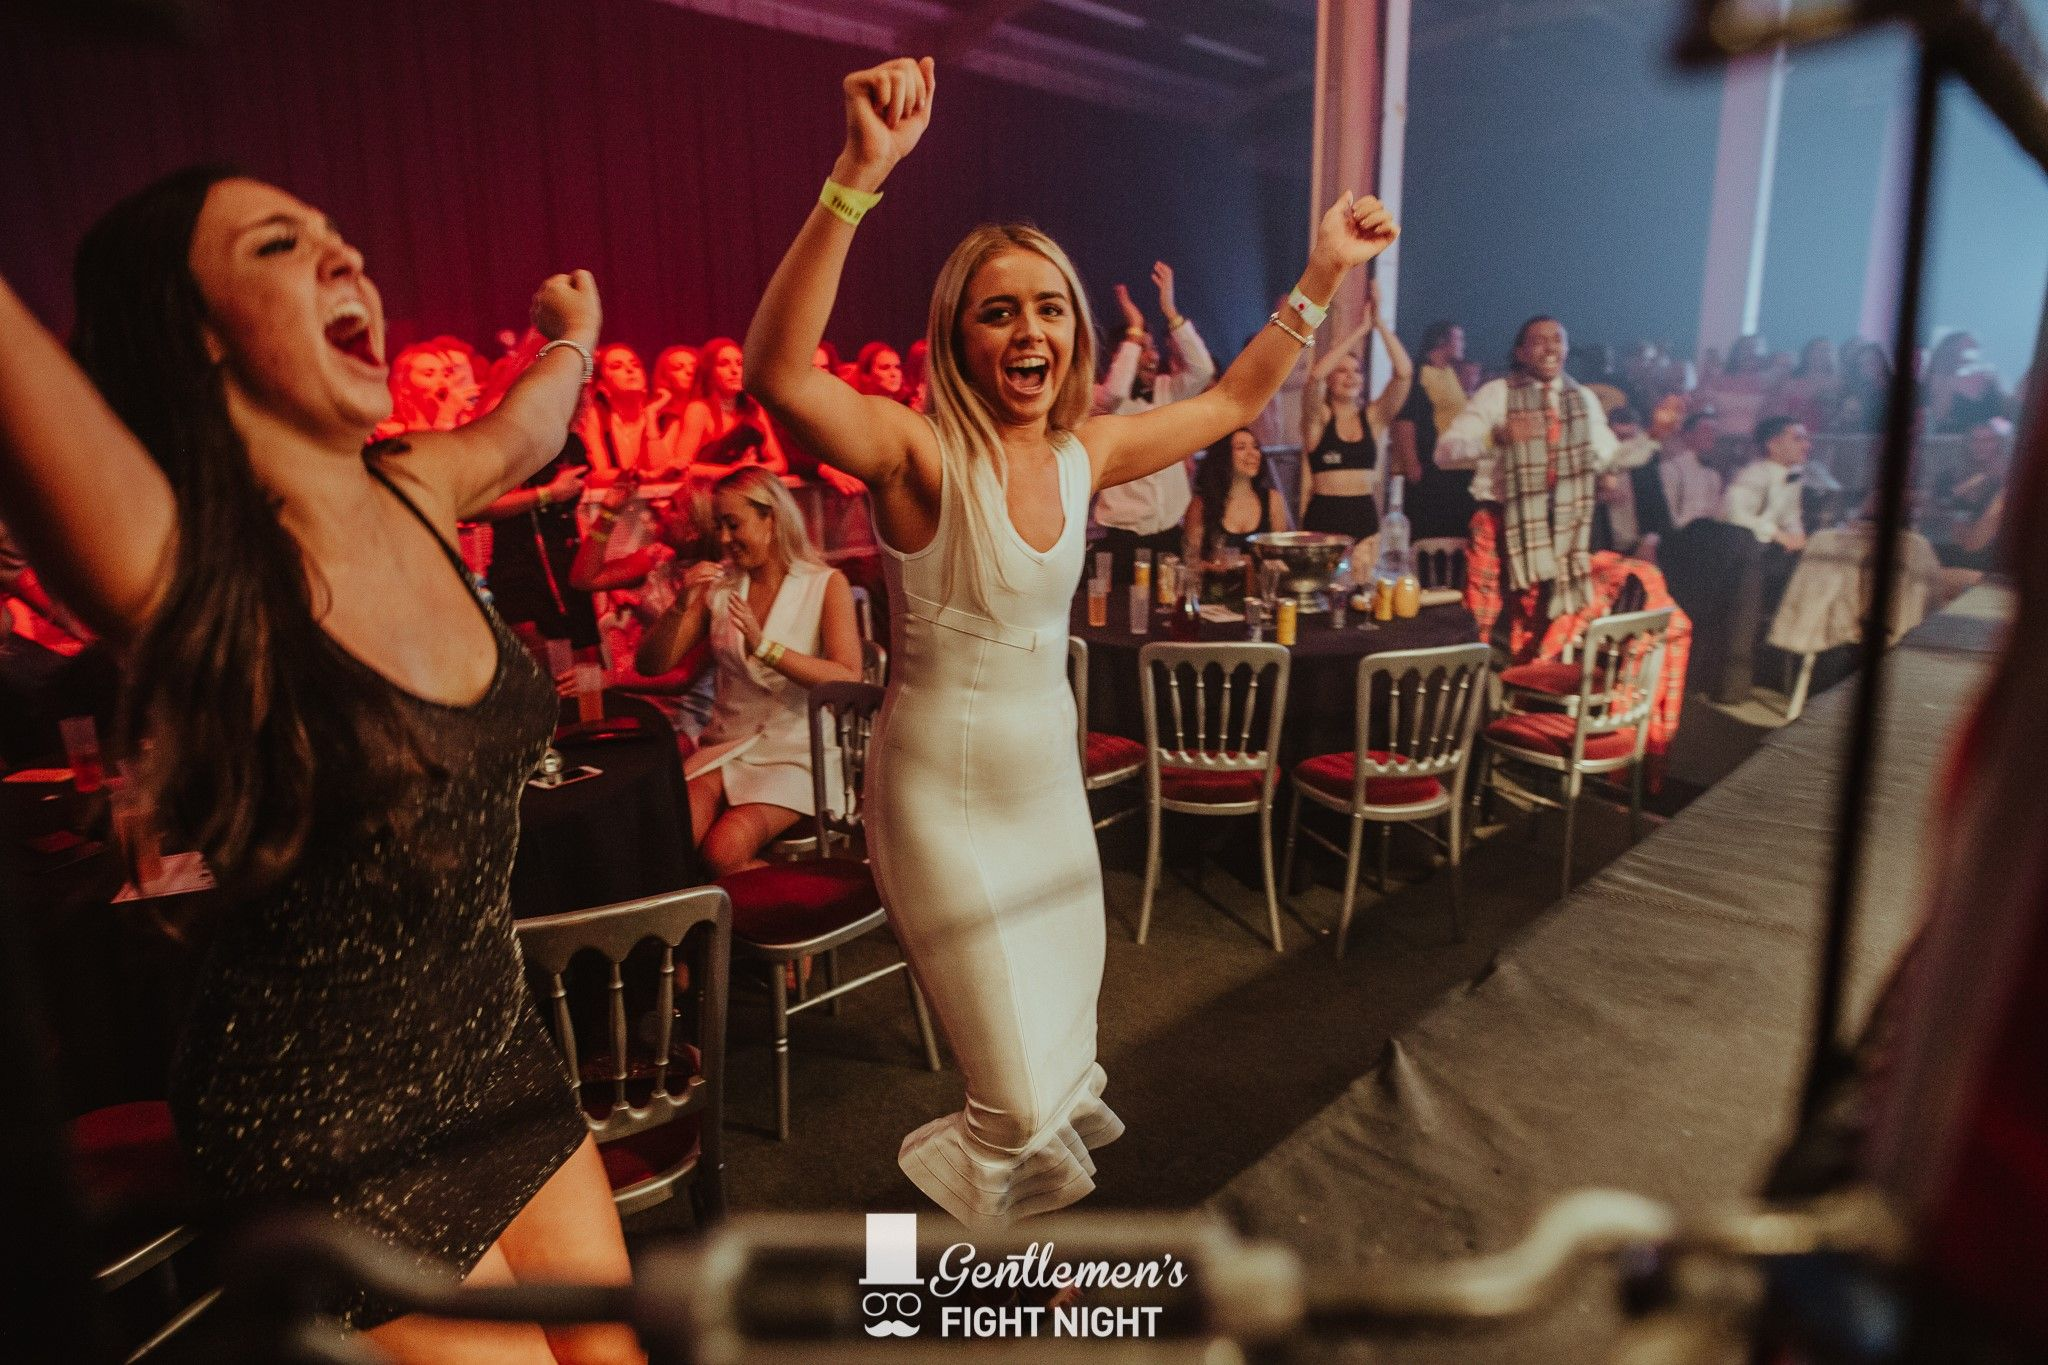 Image may contain: Crowd, Bar Counter, Pub, Night Club, Dance Pose, Leisure Activities, Night Life, Club, Chair, Furniture, Human, Person